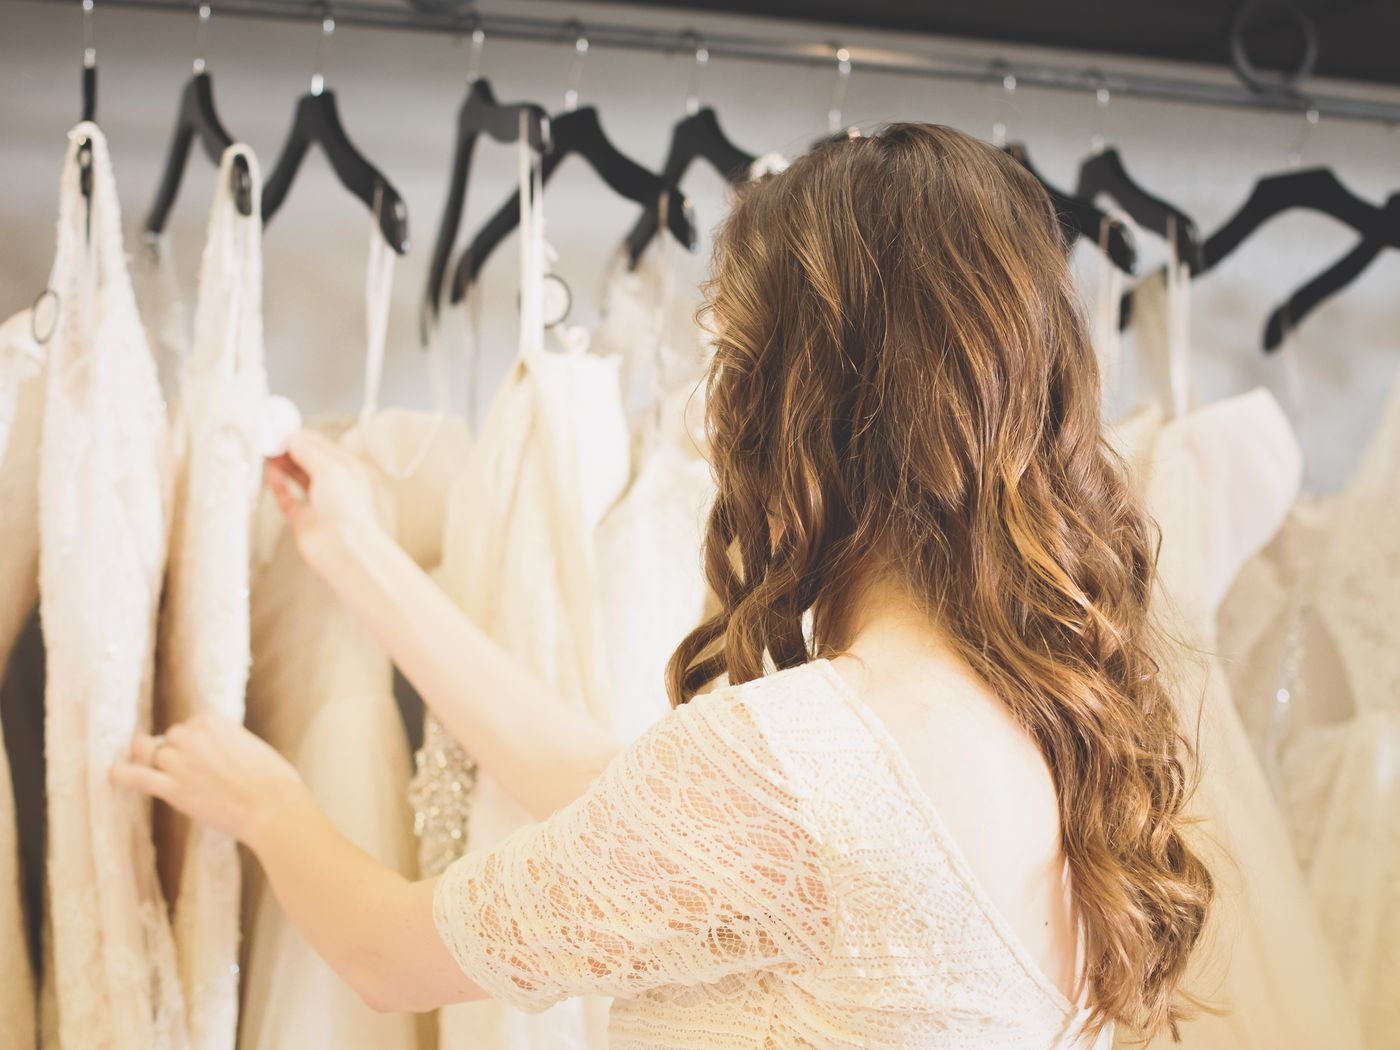 387119c846089 The Hard Lessons I Learned While Wedding Dress Shopping - Racked